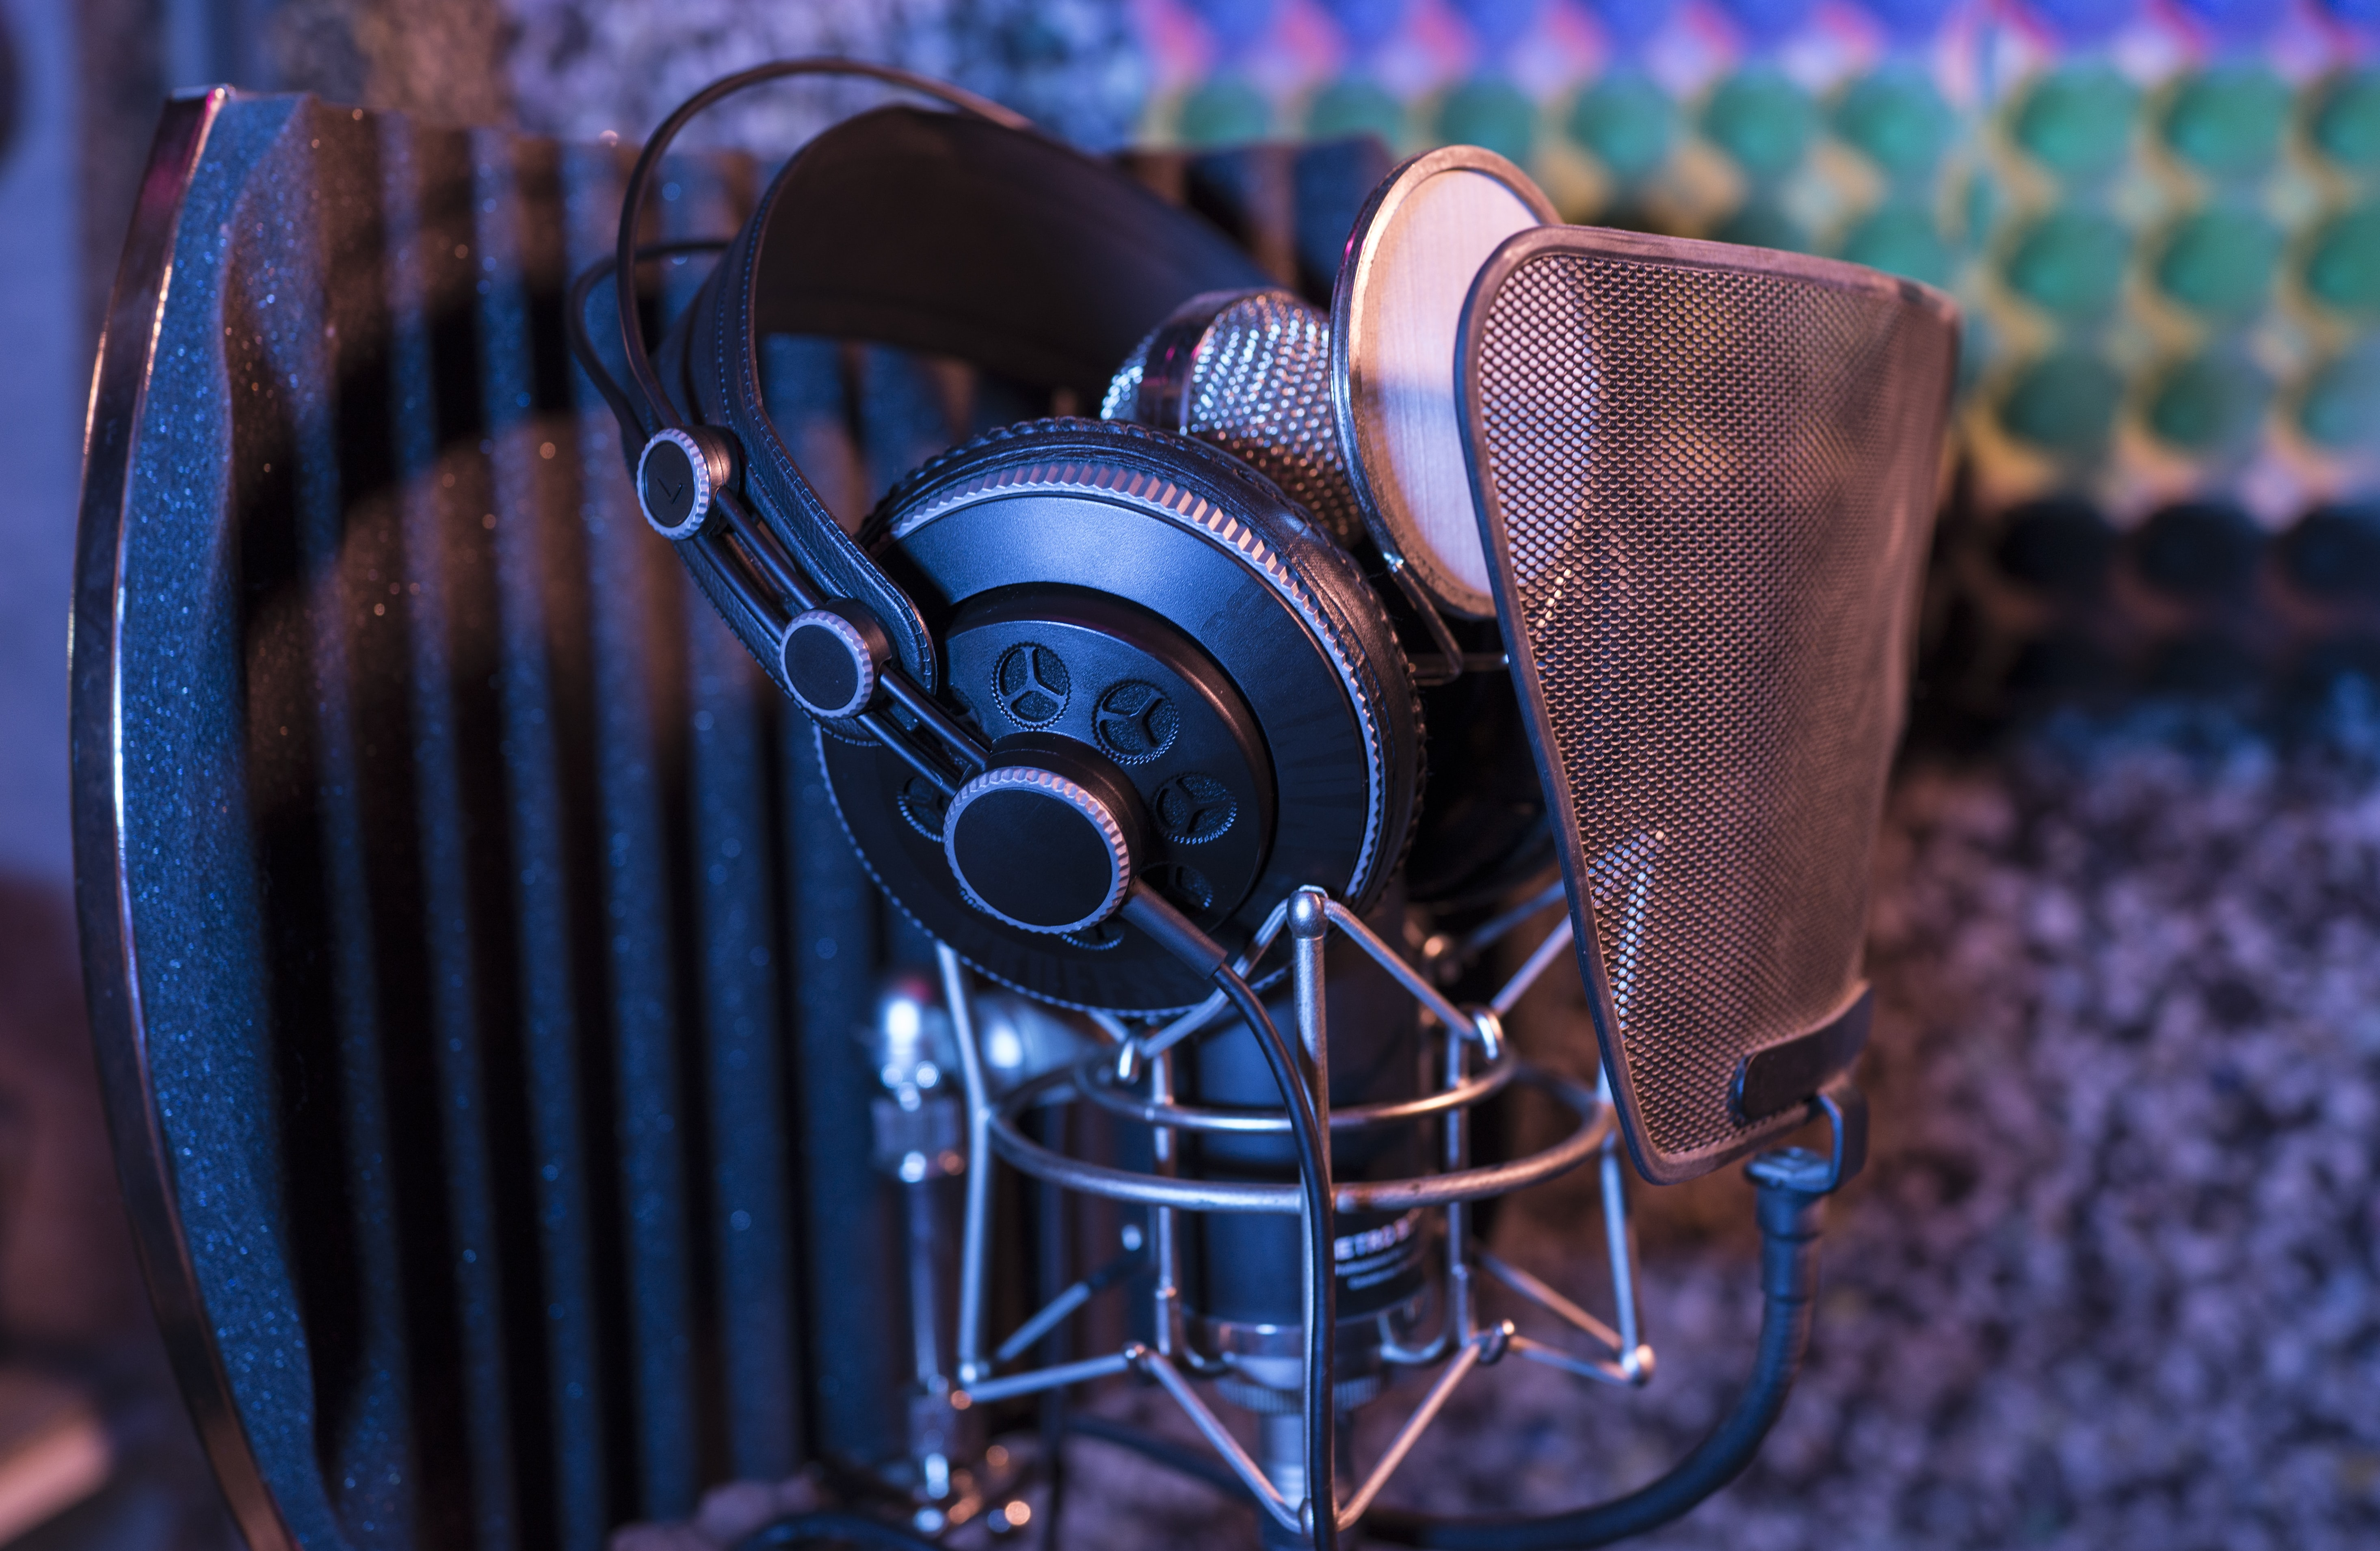 Professional studio headphones resting on a condenser microphone with a pop filter